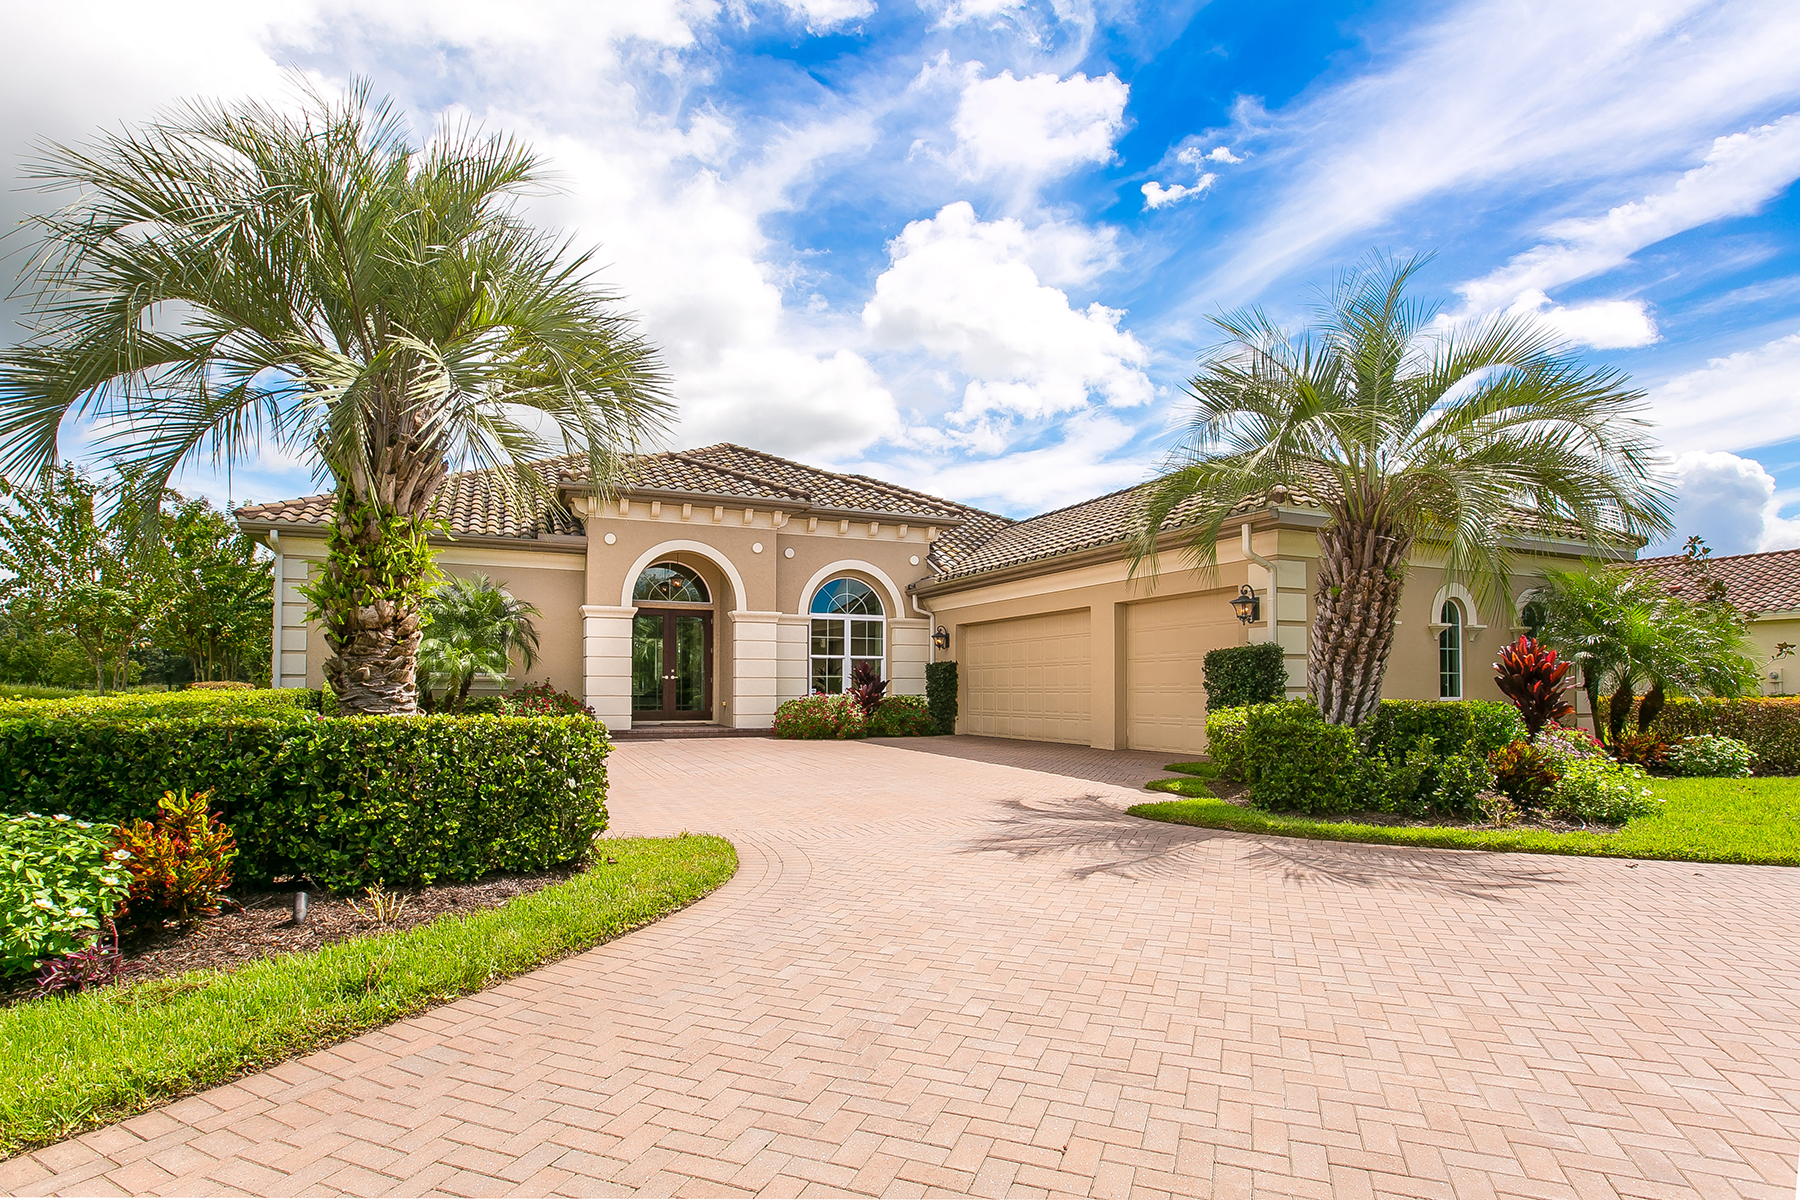 Single Family Home for Sale at FOUNDERS CLUB 3218 Founders Club Dr Sarasota, Florida 34240 United States